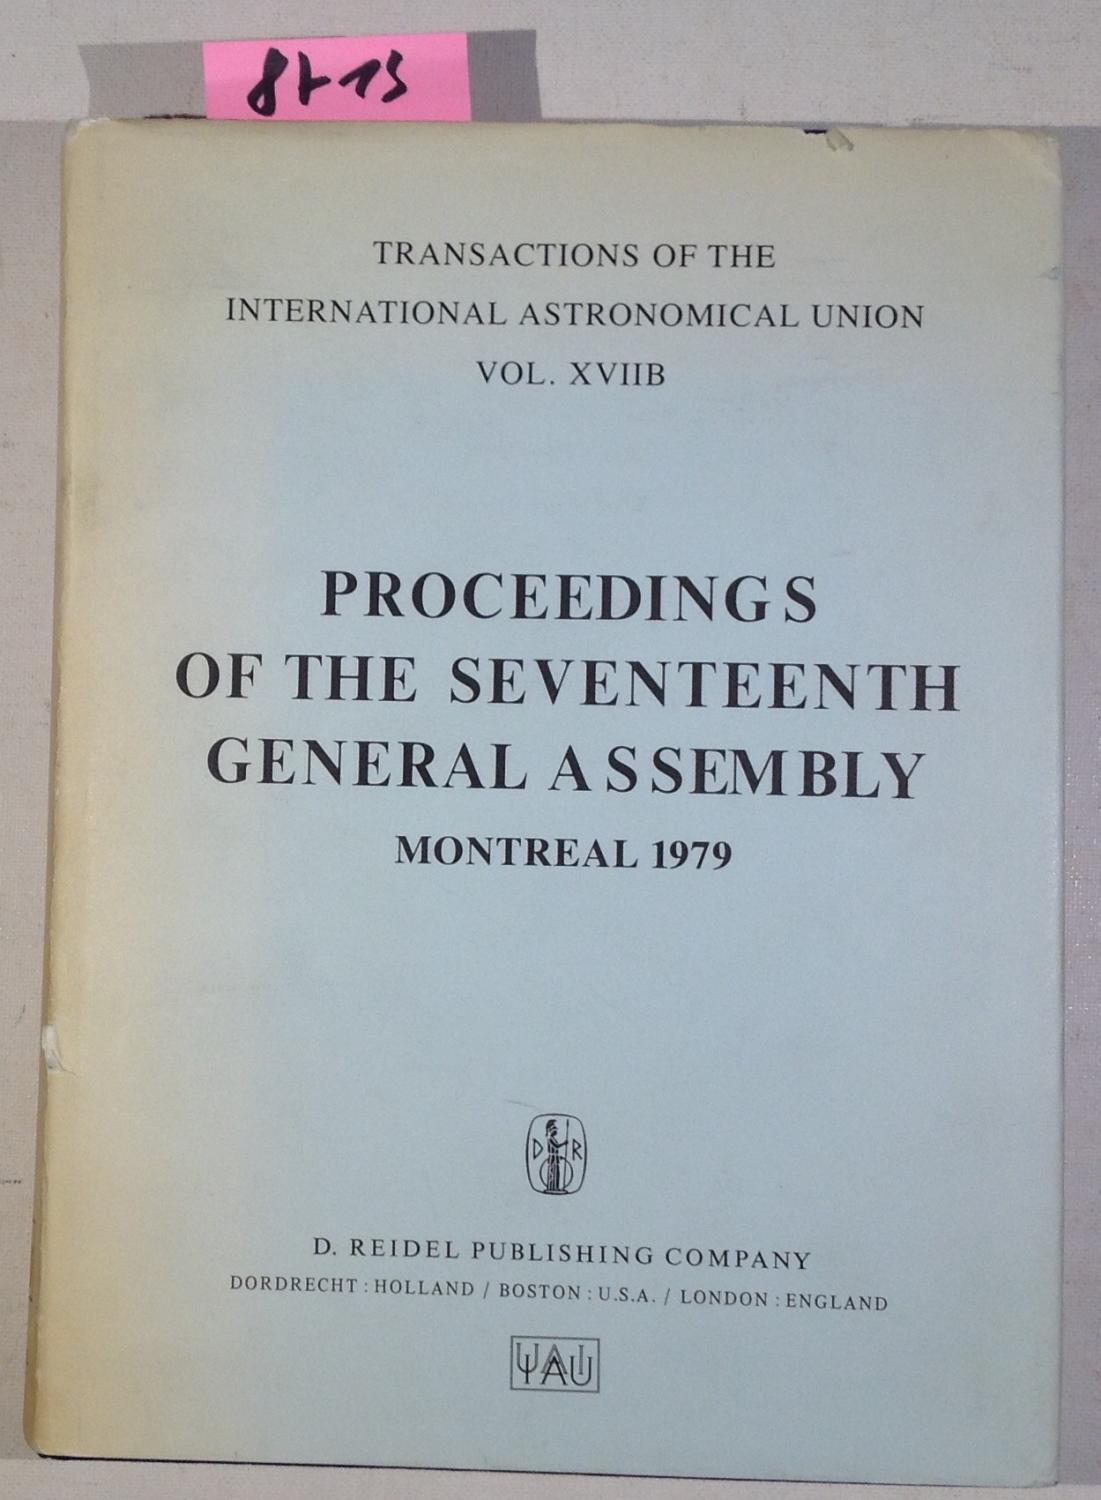 Transactions of the International Astronomical Union, Volume XVIIB - Proceedings of the Seventeenth General Assembly Montreal 1979 - Wayman, Patrick A. - Editor